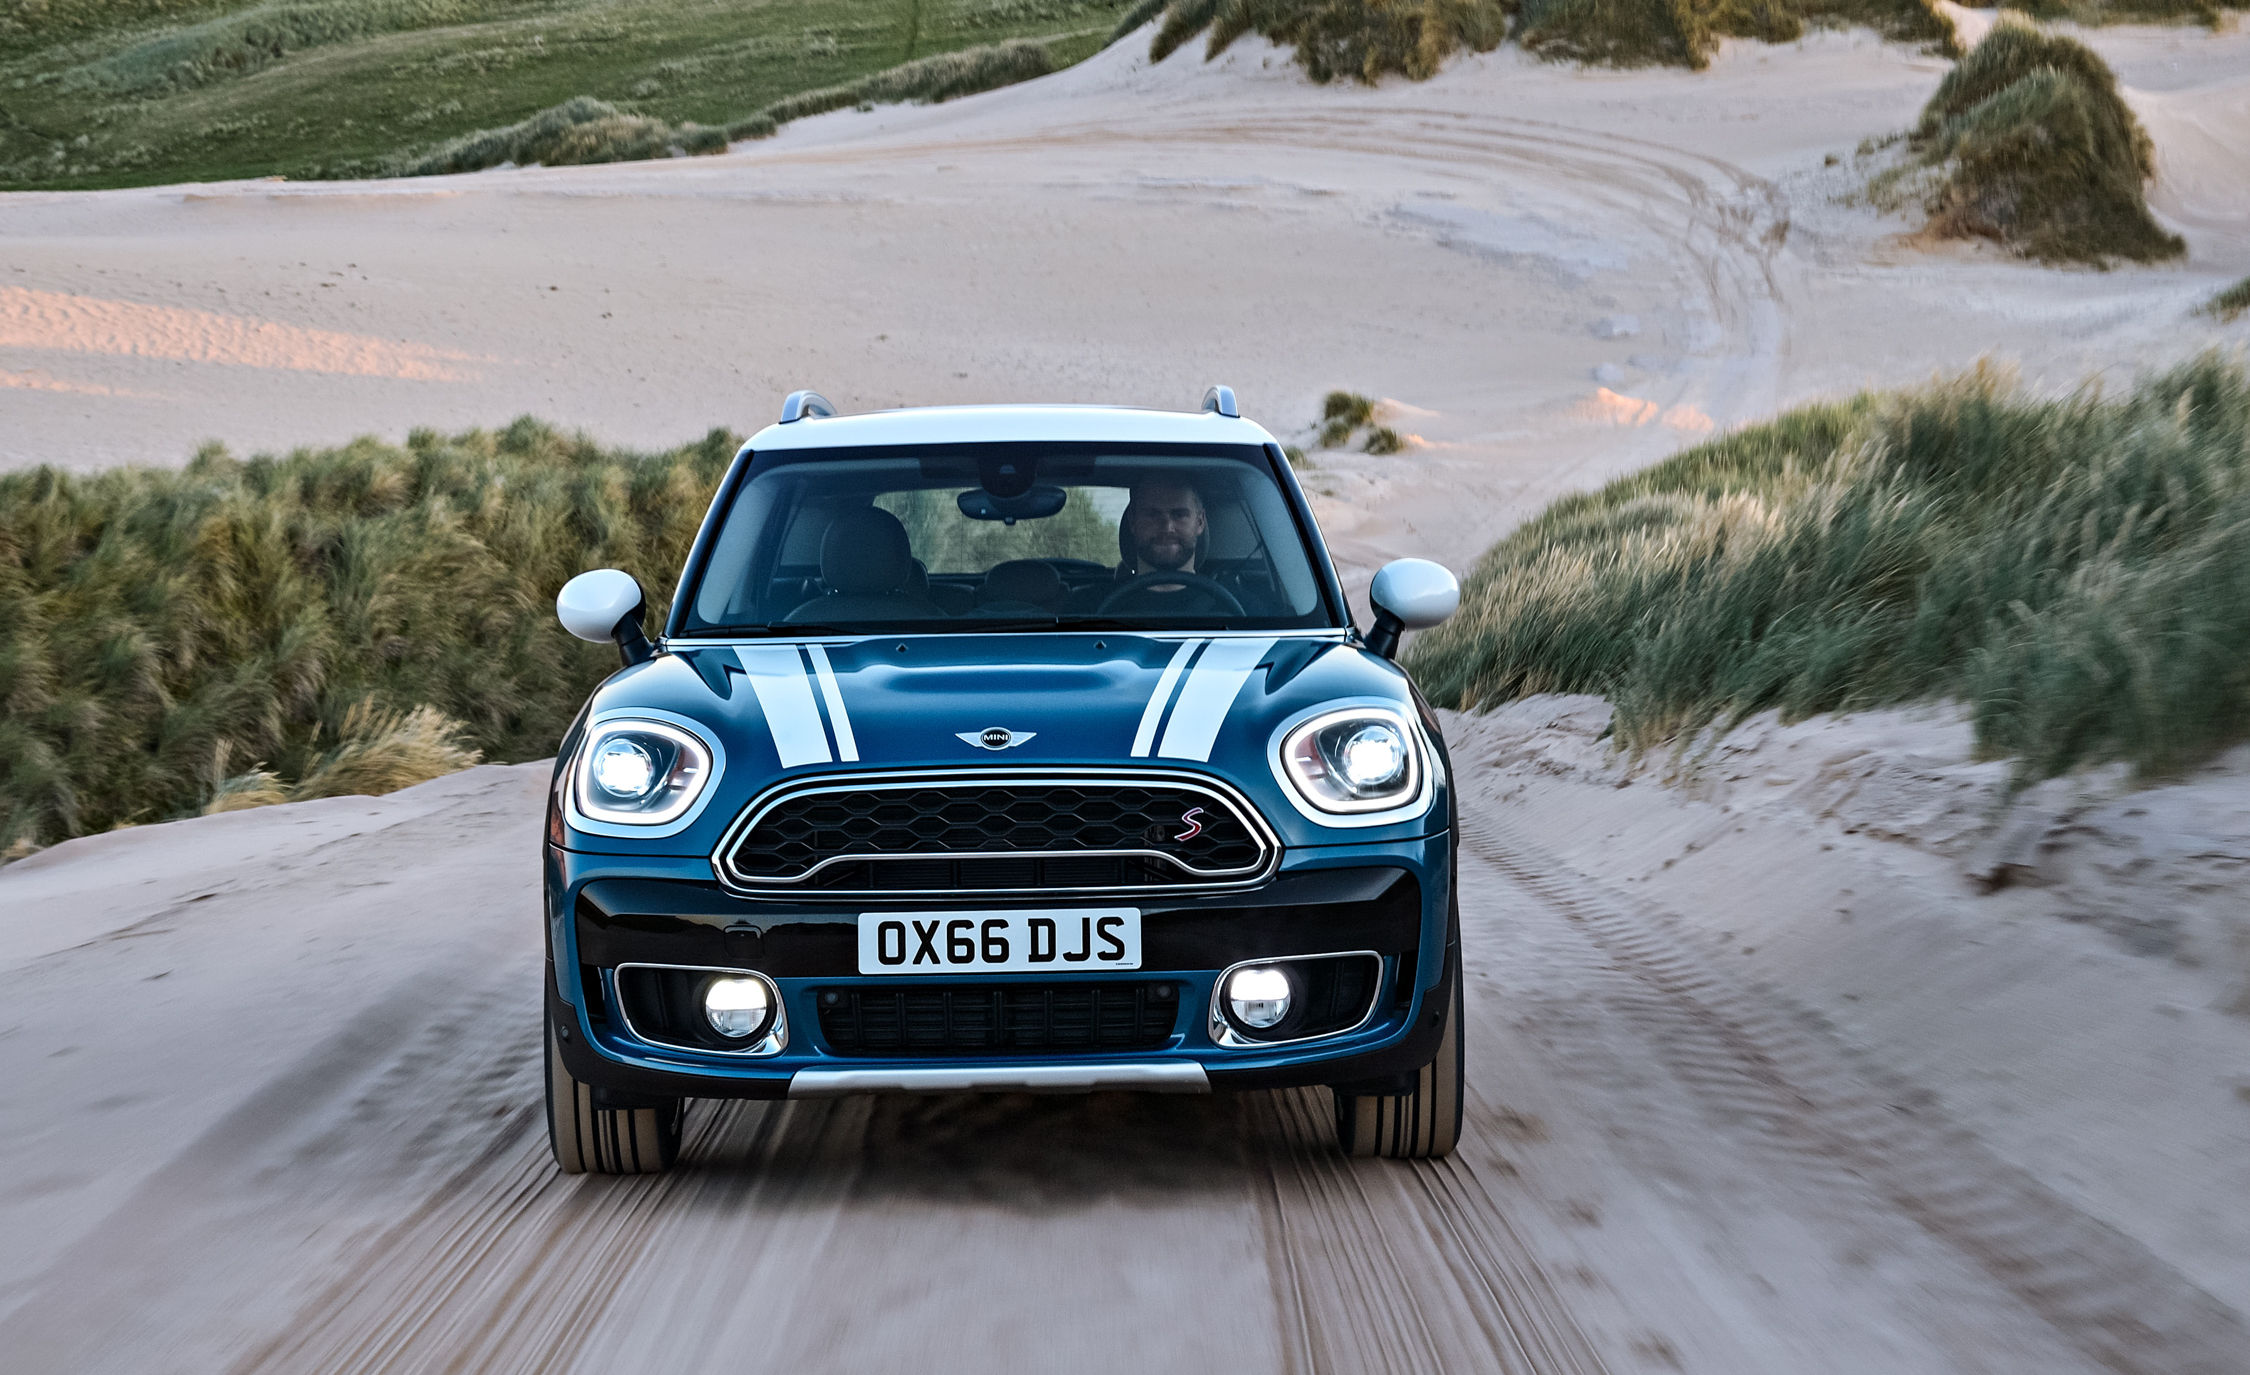 2017 Mini Cooper S Countryman Test Drive Front End (Photo 16 of 61)